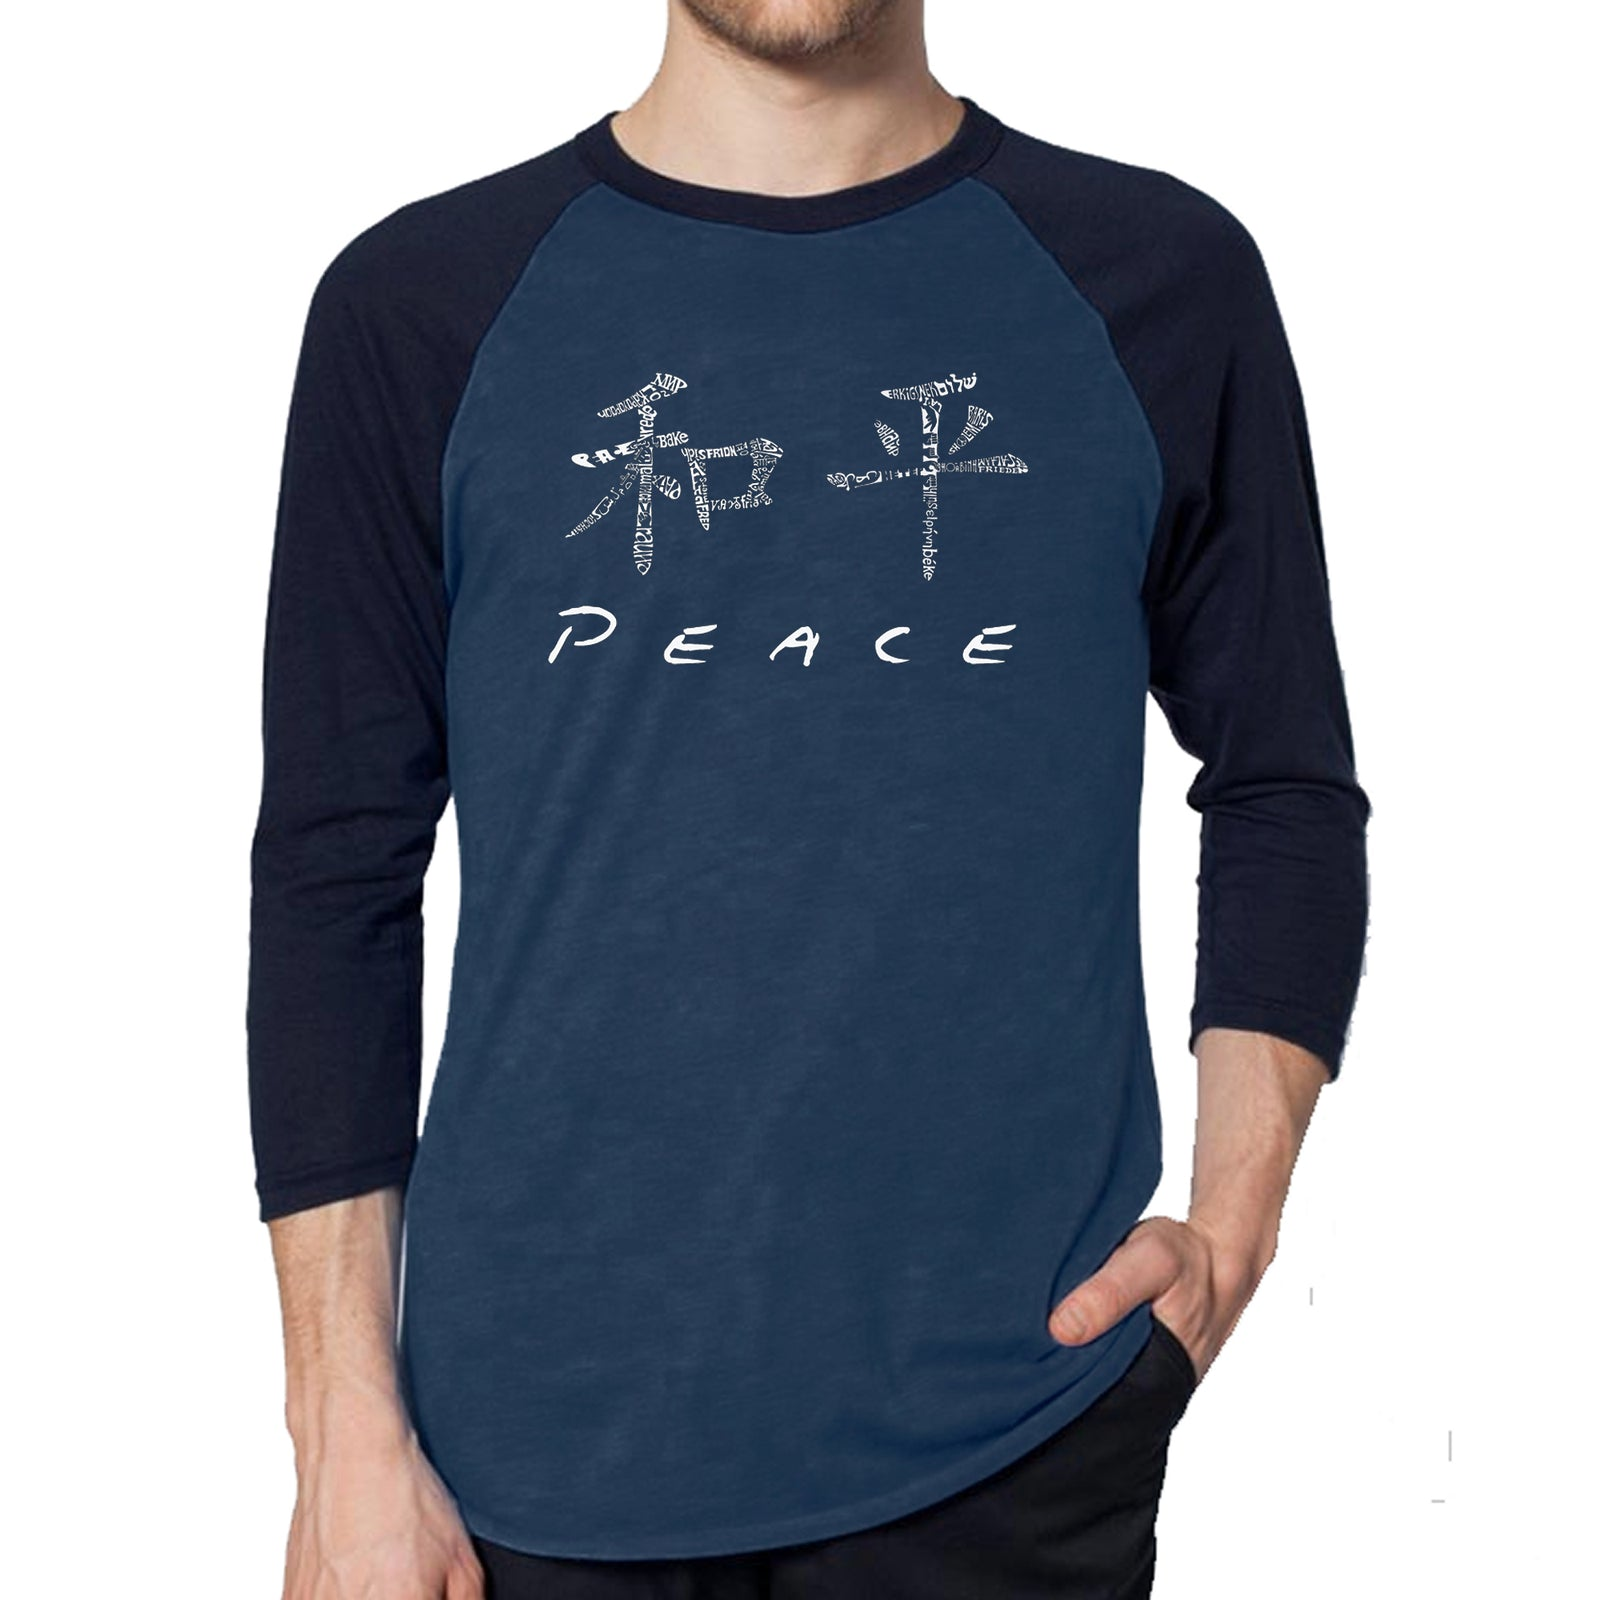 Men's Raglan Baseball Word Art T-shirt - CHINESE PEACE SYMBOL